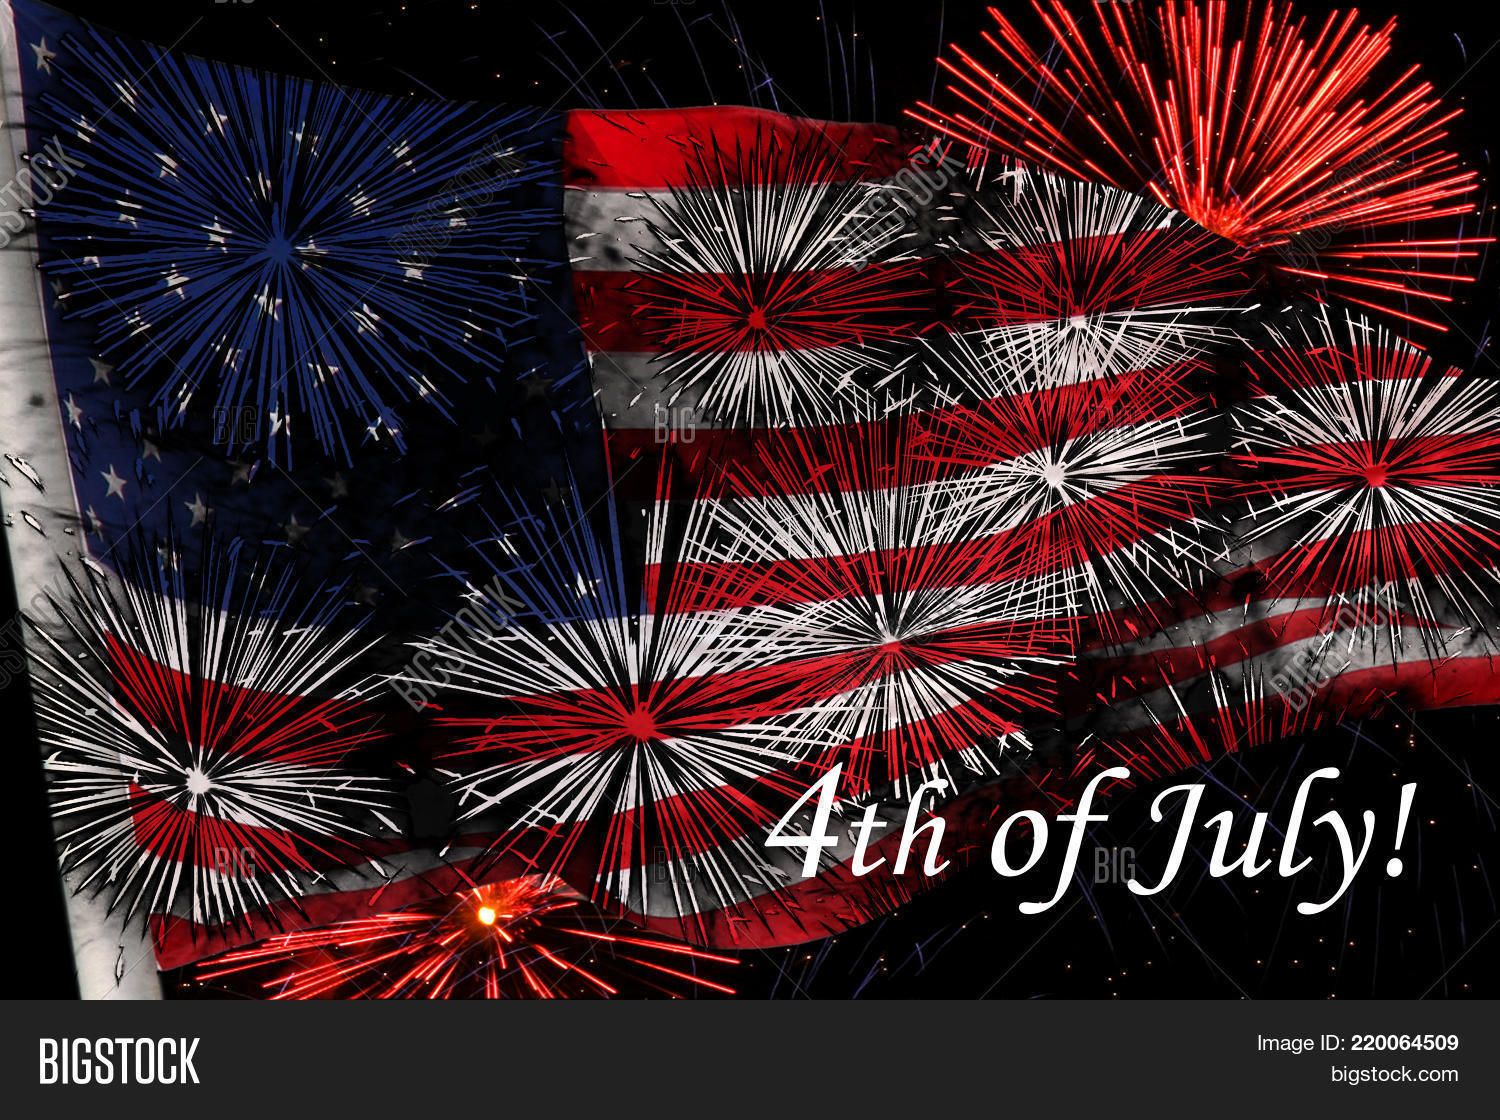 united states flag fireworks background for usa independence day fourth of july celebrate